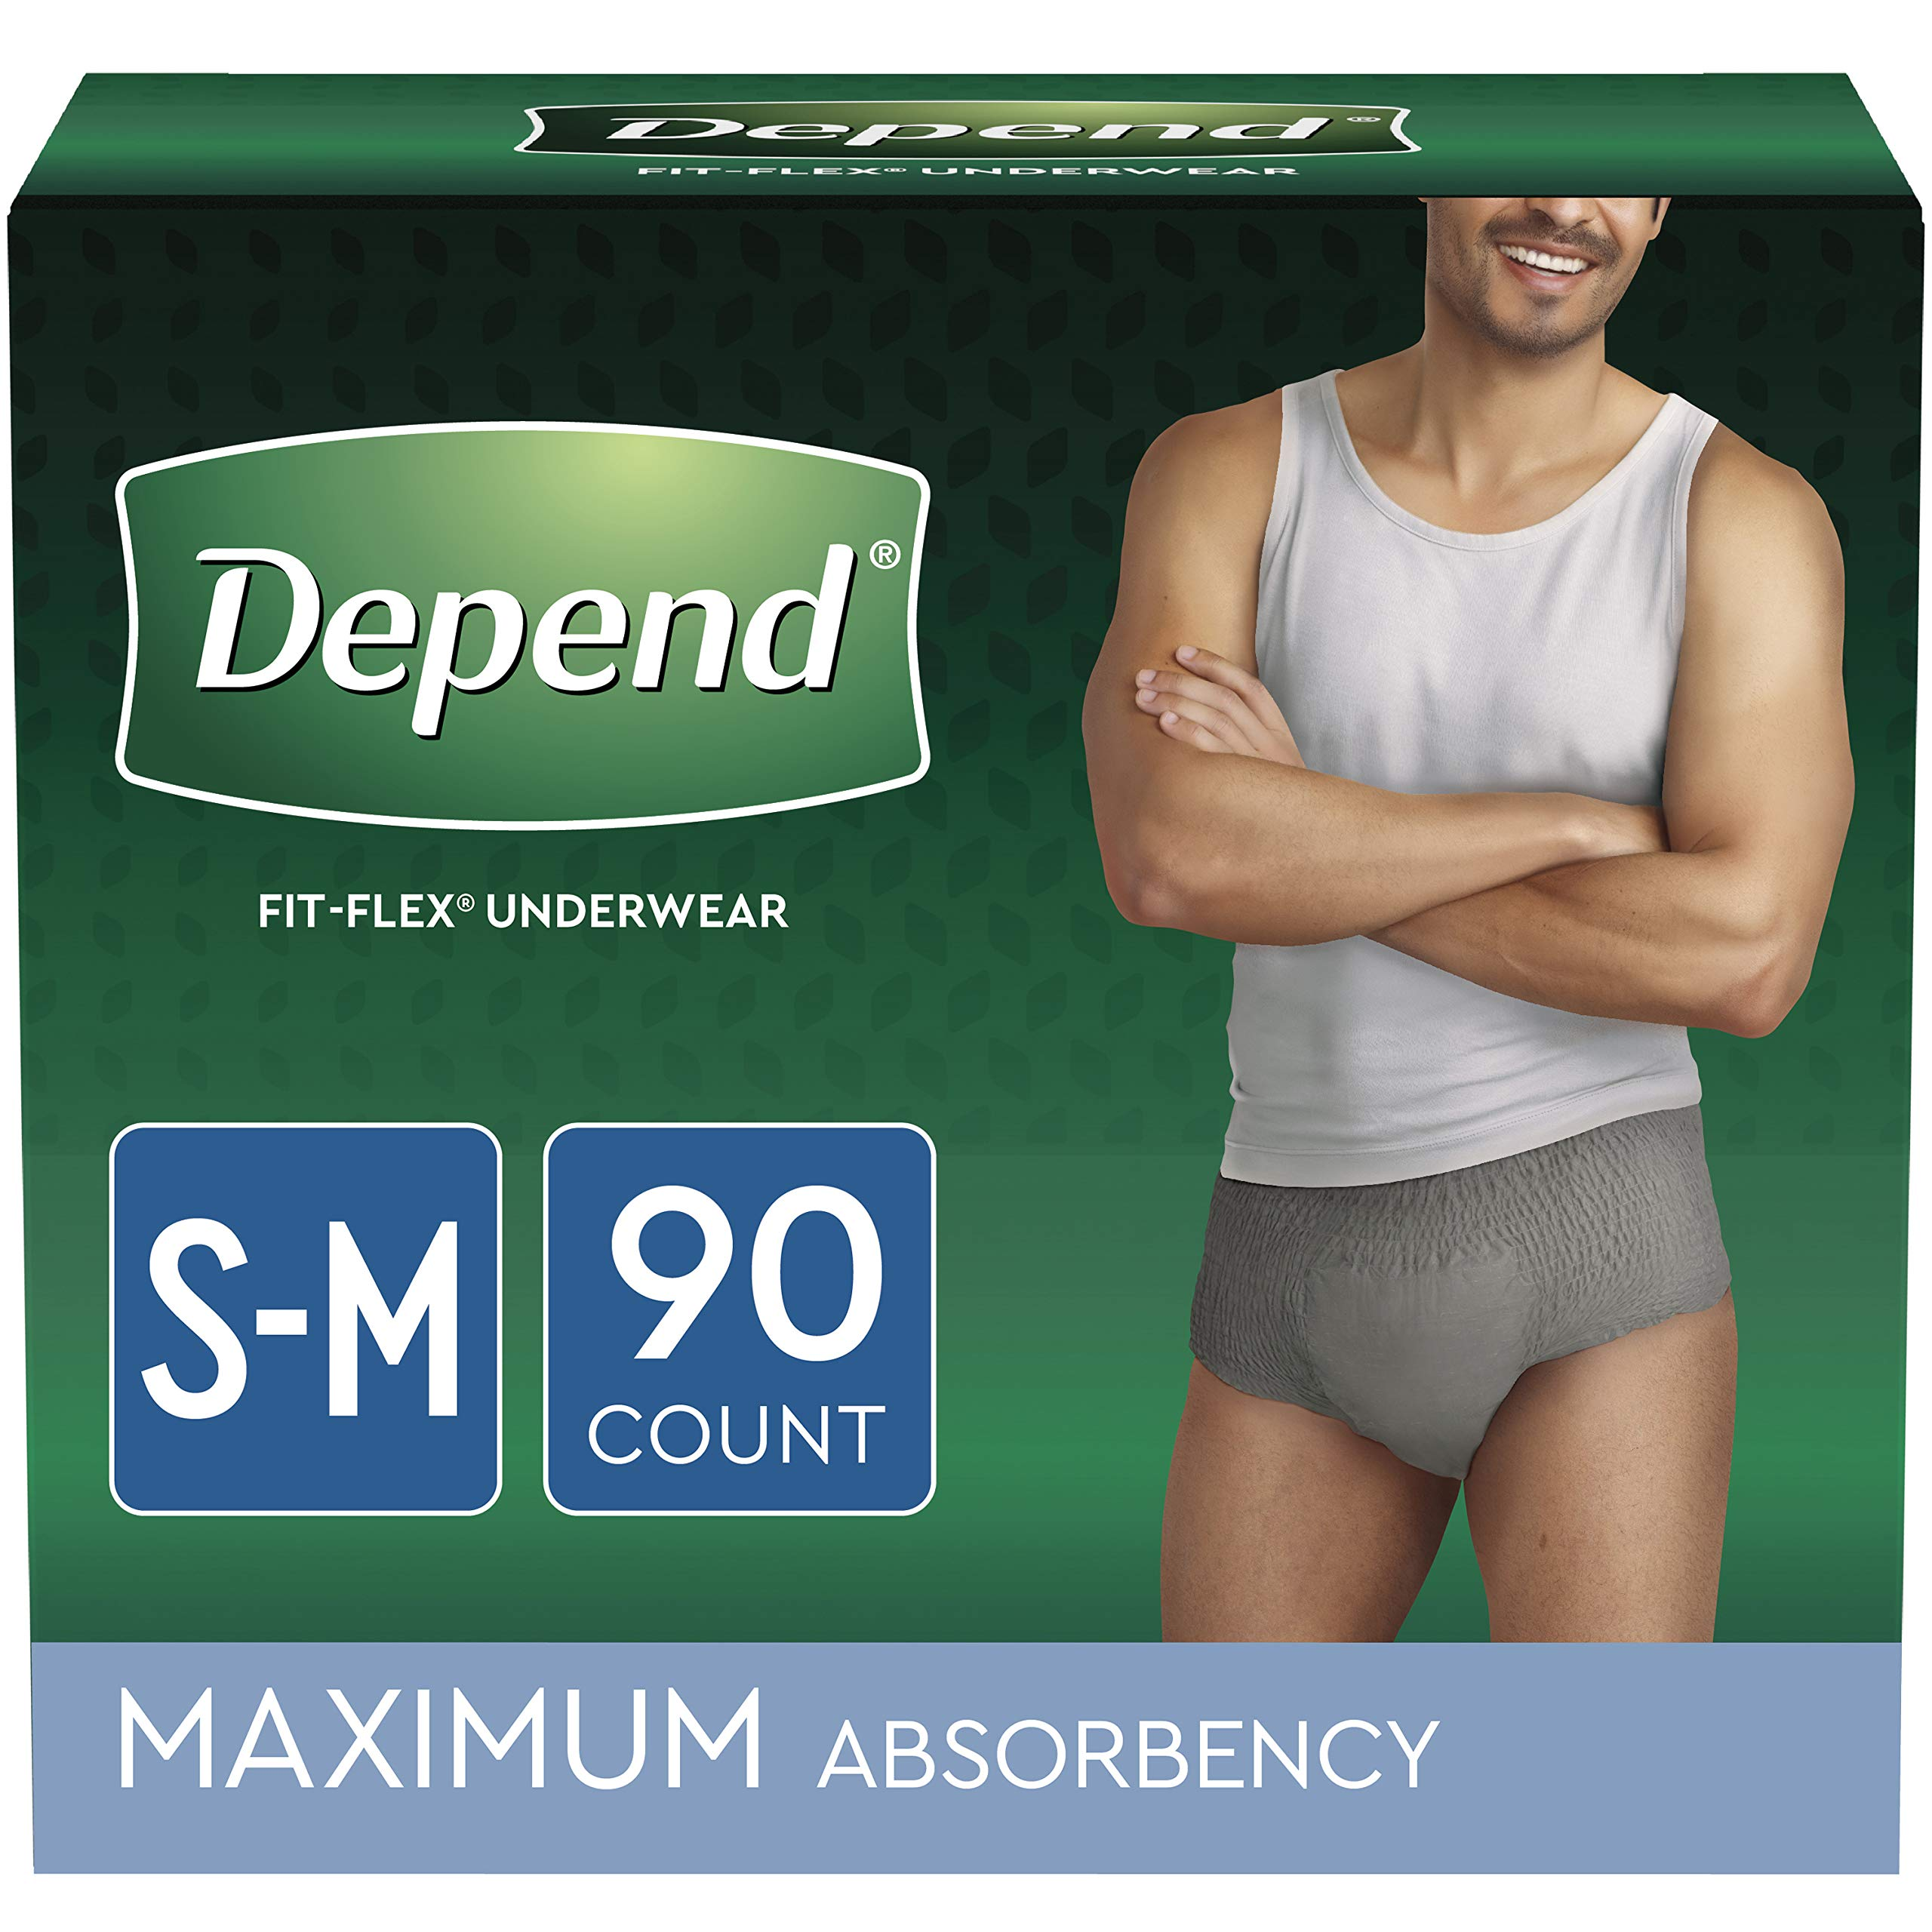 Depend FIT-FLEX Incontinence Underwear for Men, Maximum Absorbency, Disposable, S/M, Grey, 90 Count by Depend